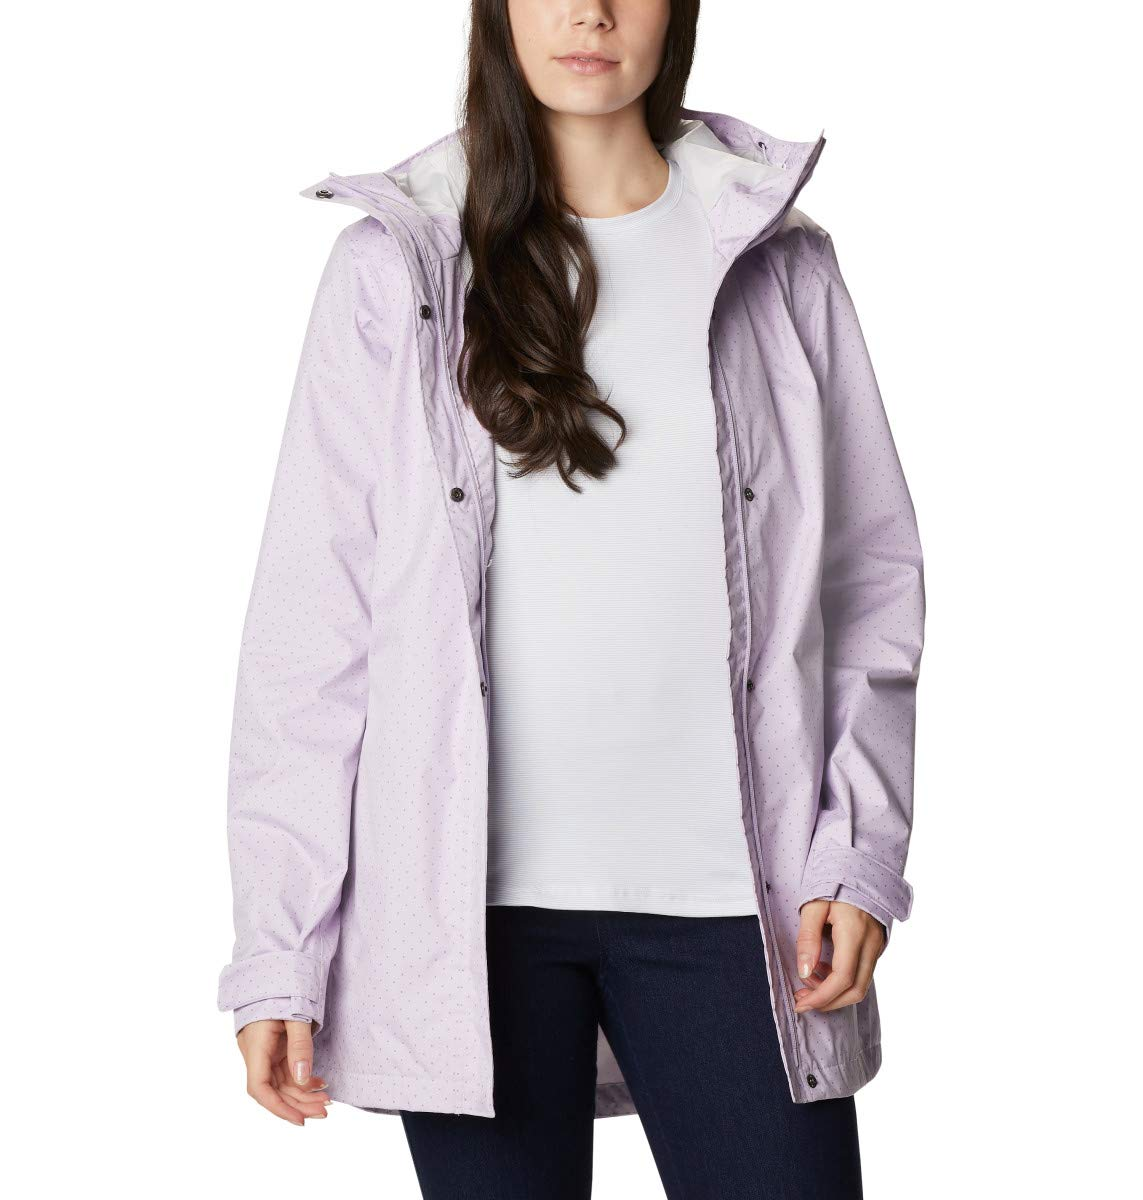 Columbia: Extra 20% Off Sale Items